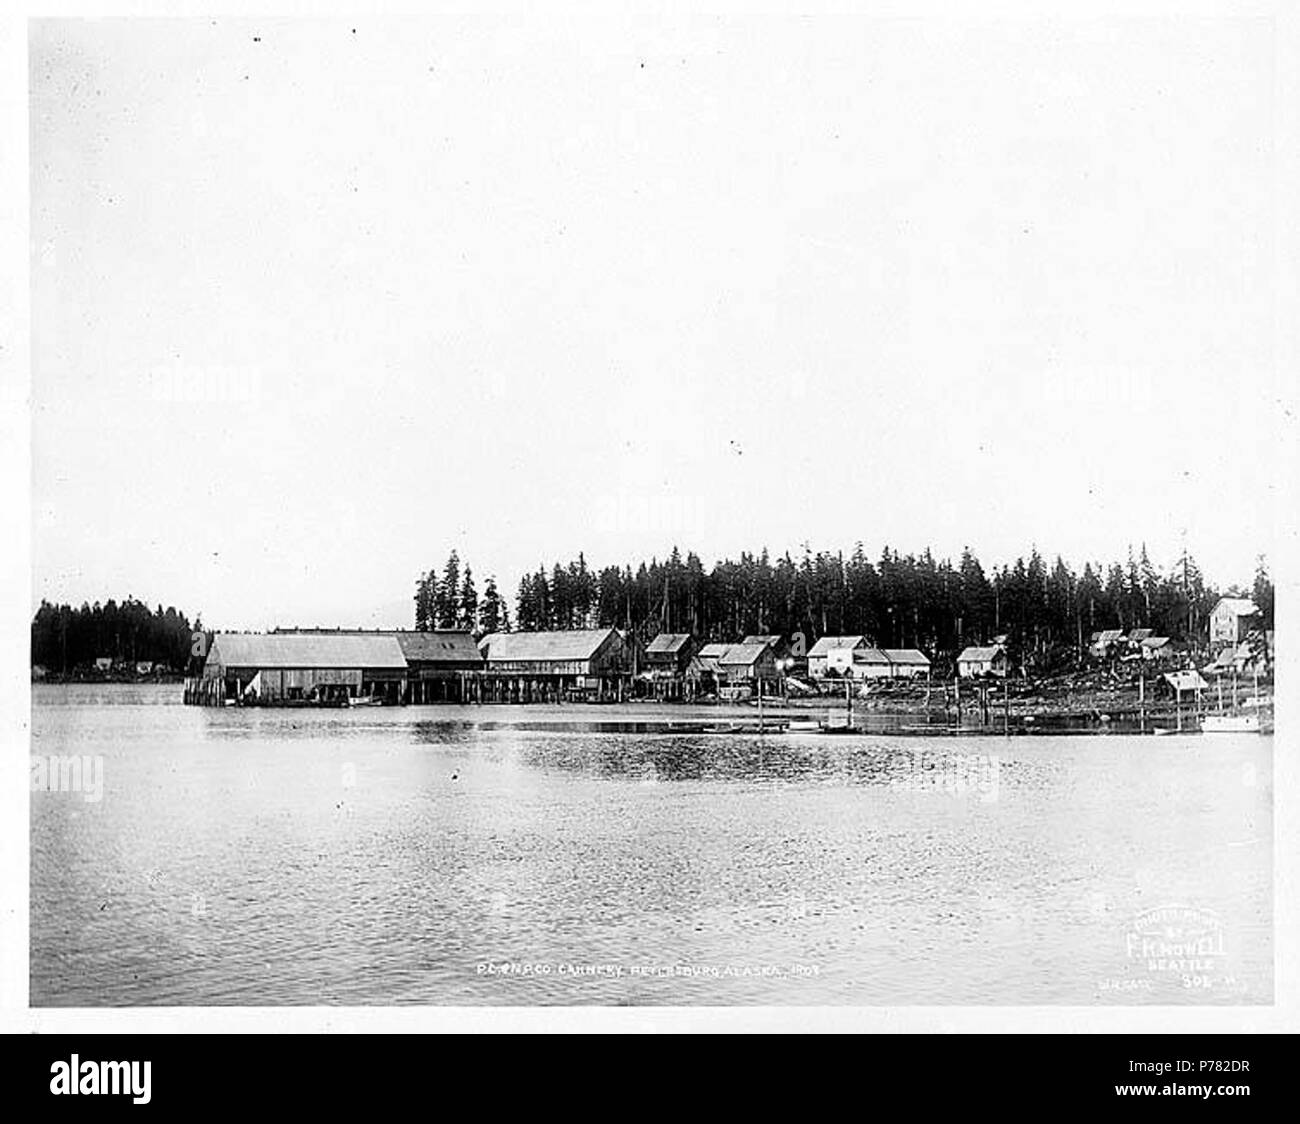 . English: Pacific Coast and Norway Packing Co. Cannery, Petersburg, 1908 . English: Caption on image: P.C. & N.P. Co. Cannery, Petersburg, Alaska, 1908. Photo Print by F.H. Nowell, Seattle. W.H. Case. 302-N Petersburg is located on the north end of Kitkof Island, 32 miles northwest of Wrangell. Known as the Little Norway of Alaska, Petersburg was inhabited largely by Scandinavians whose chief occupation was fishing, canning, lumbering and fur farming. The town grew up around a salmon cannery and a sawmill built in 1897-1899. A post office was established in 1900. (pg. 751) Notes from Donald O - Stock Image